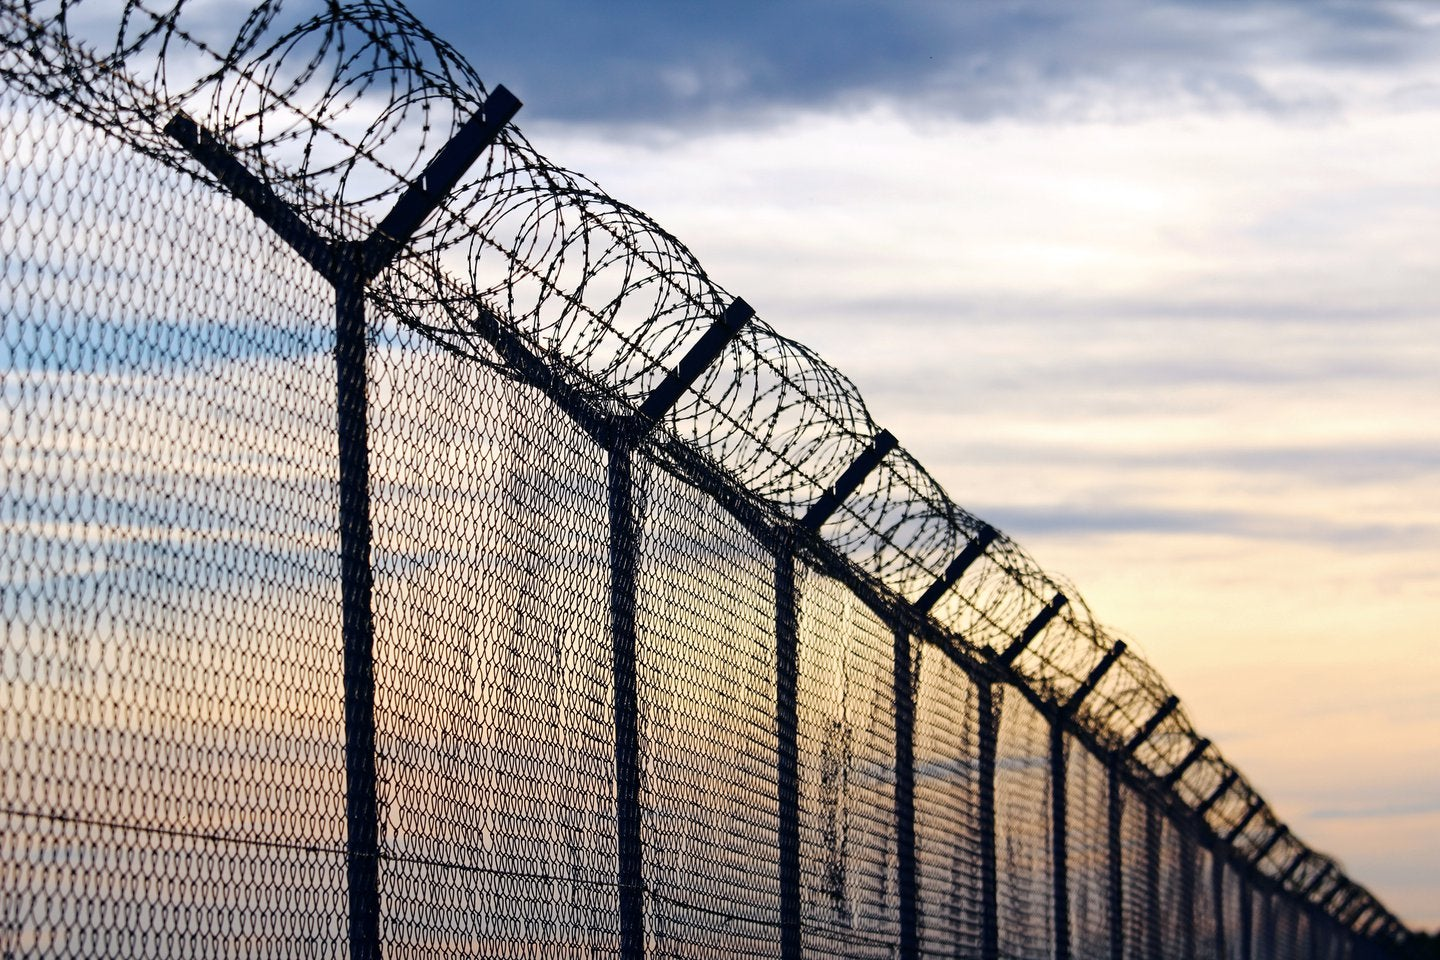 prison wall with barbed wire